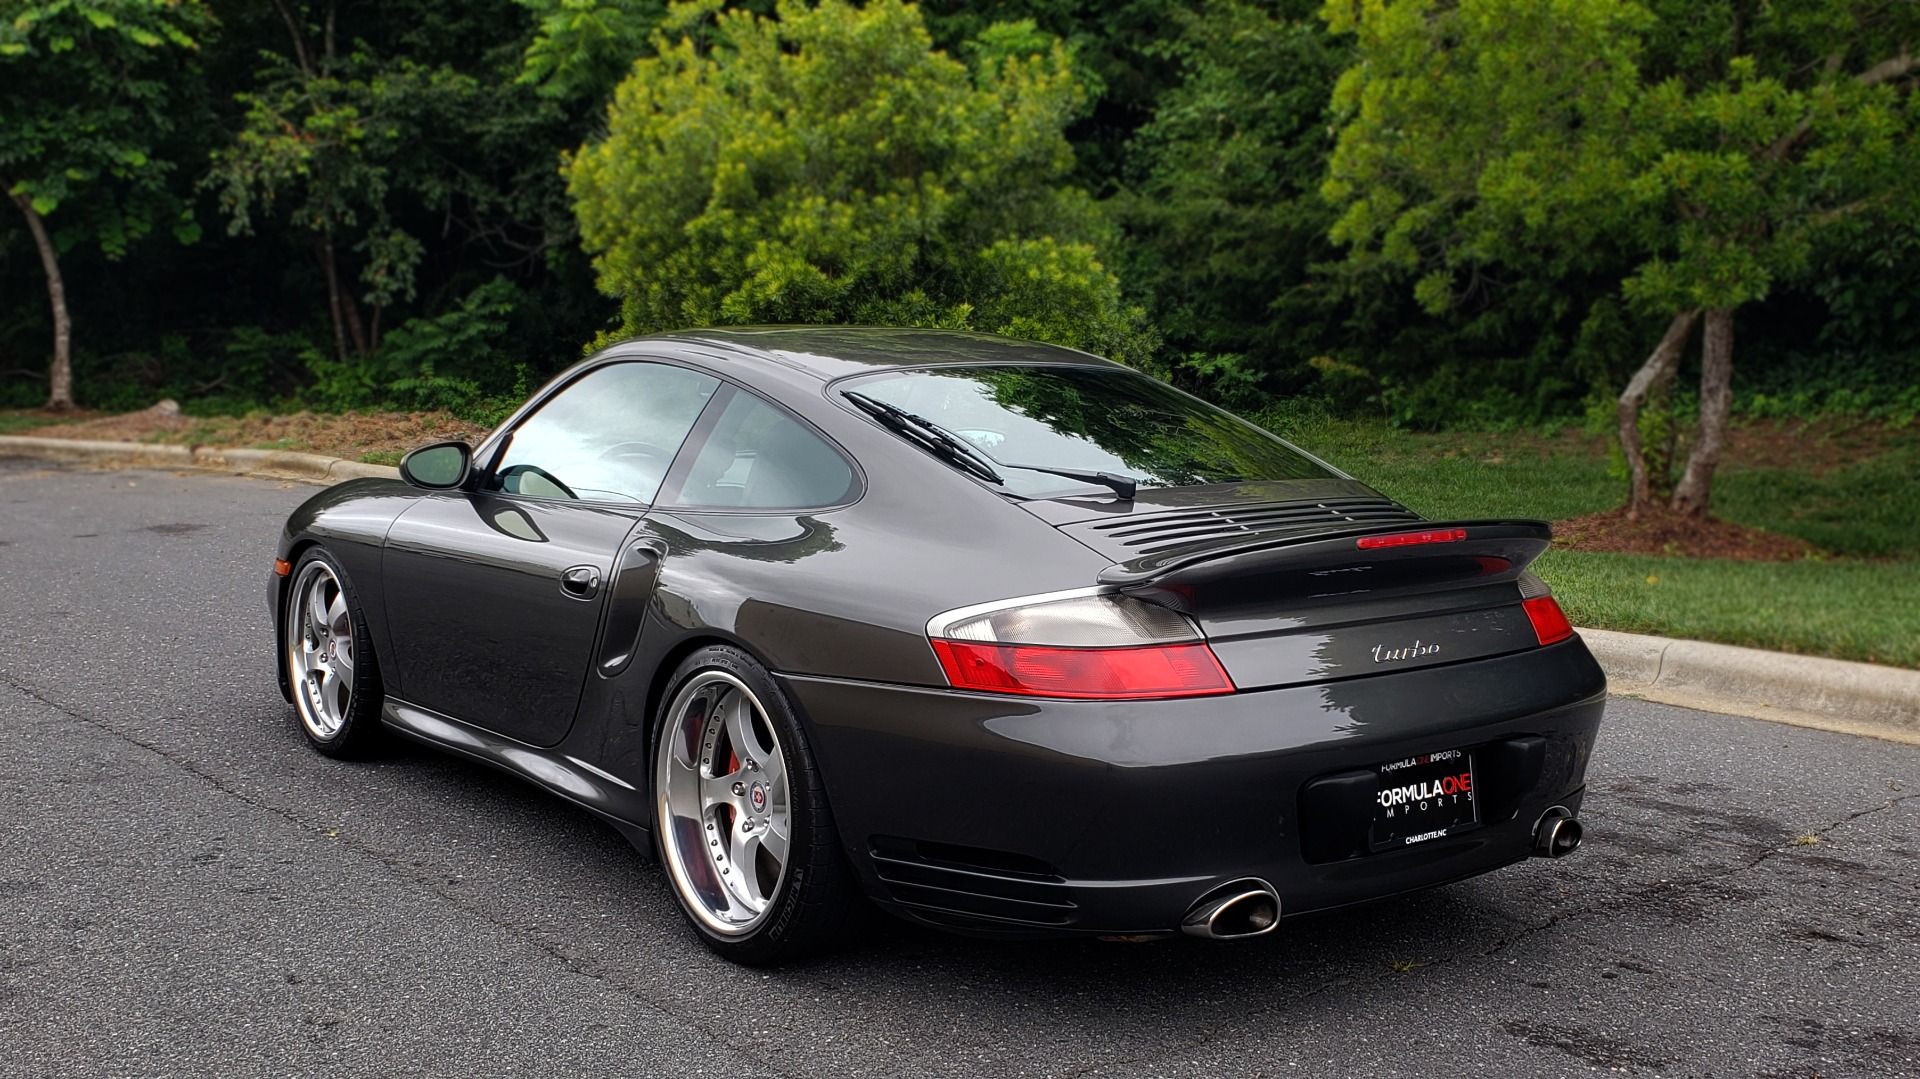 Used 2002 Porsche 911 CARRERA TURBO / 6-SPD MAN / ALPINE / BOSE / PERF UPGRADES for sale $53,995 at Formula Imports in Charlotte NC 28227 5